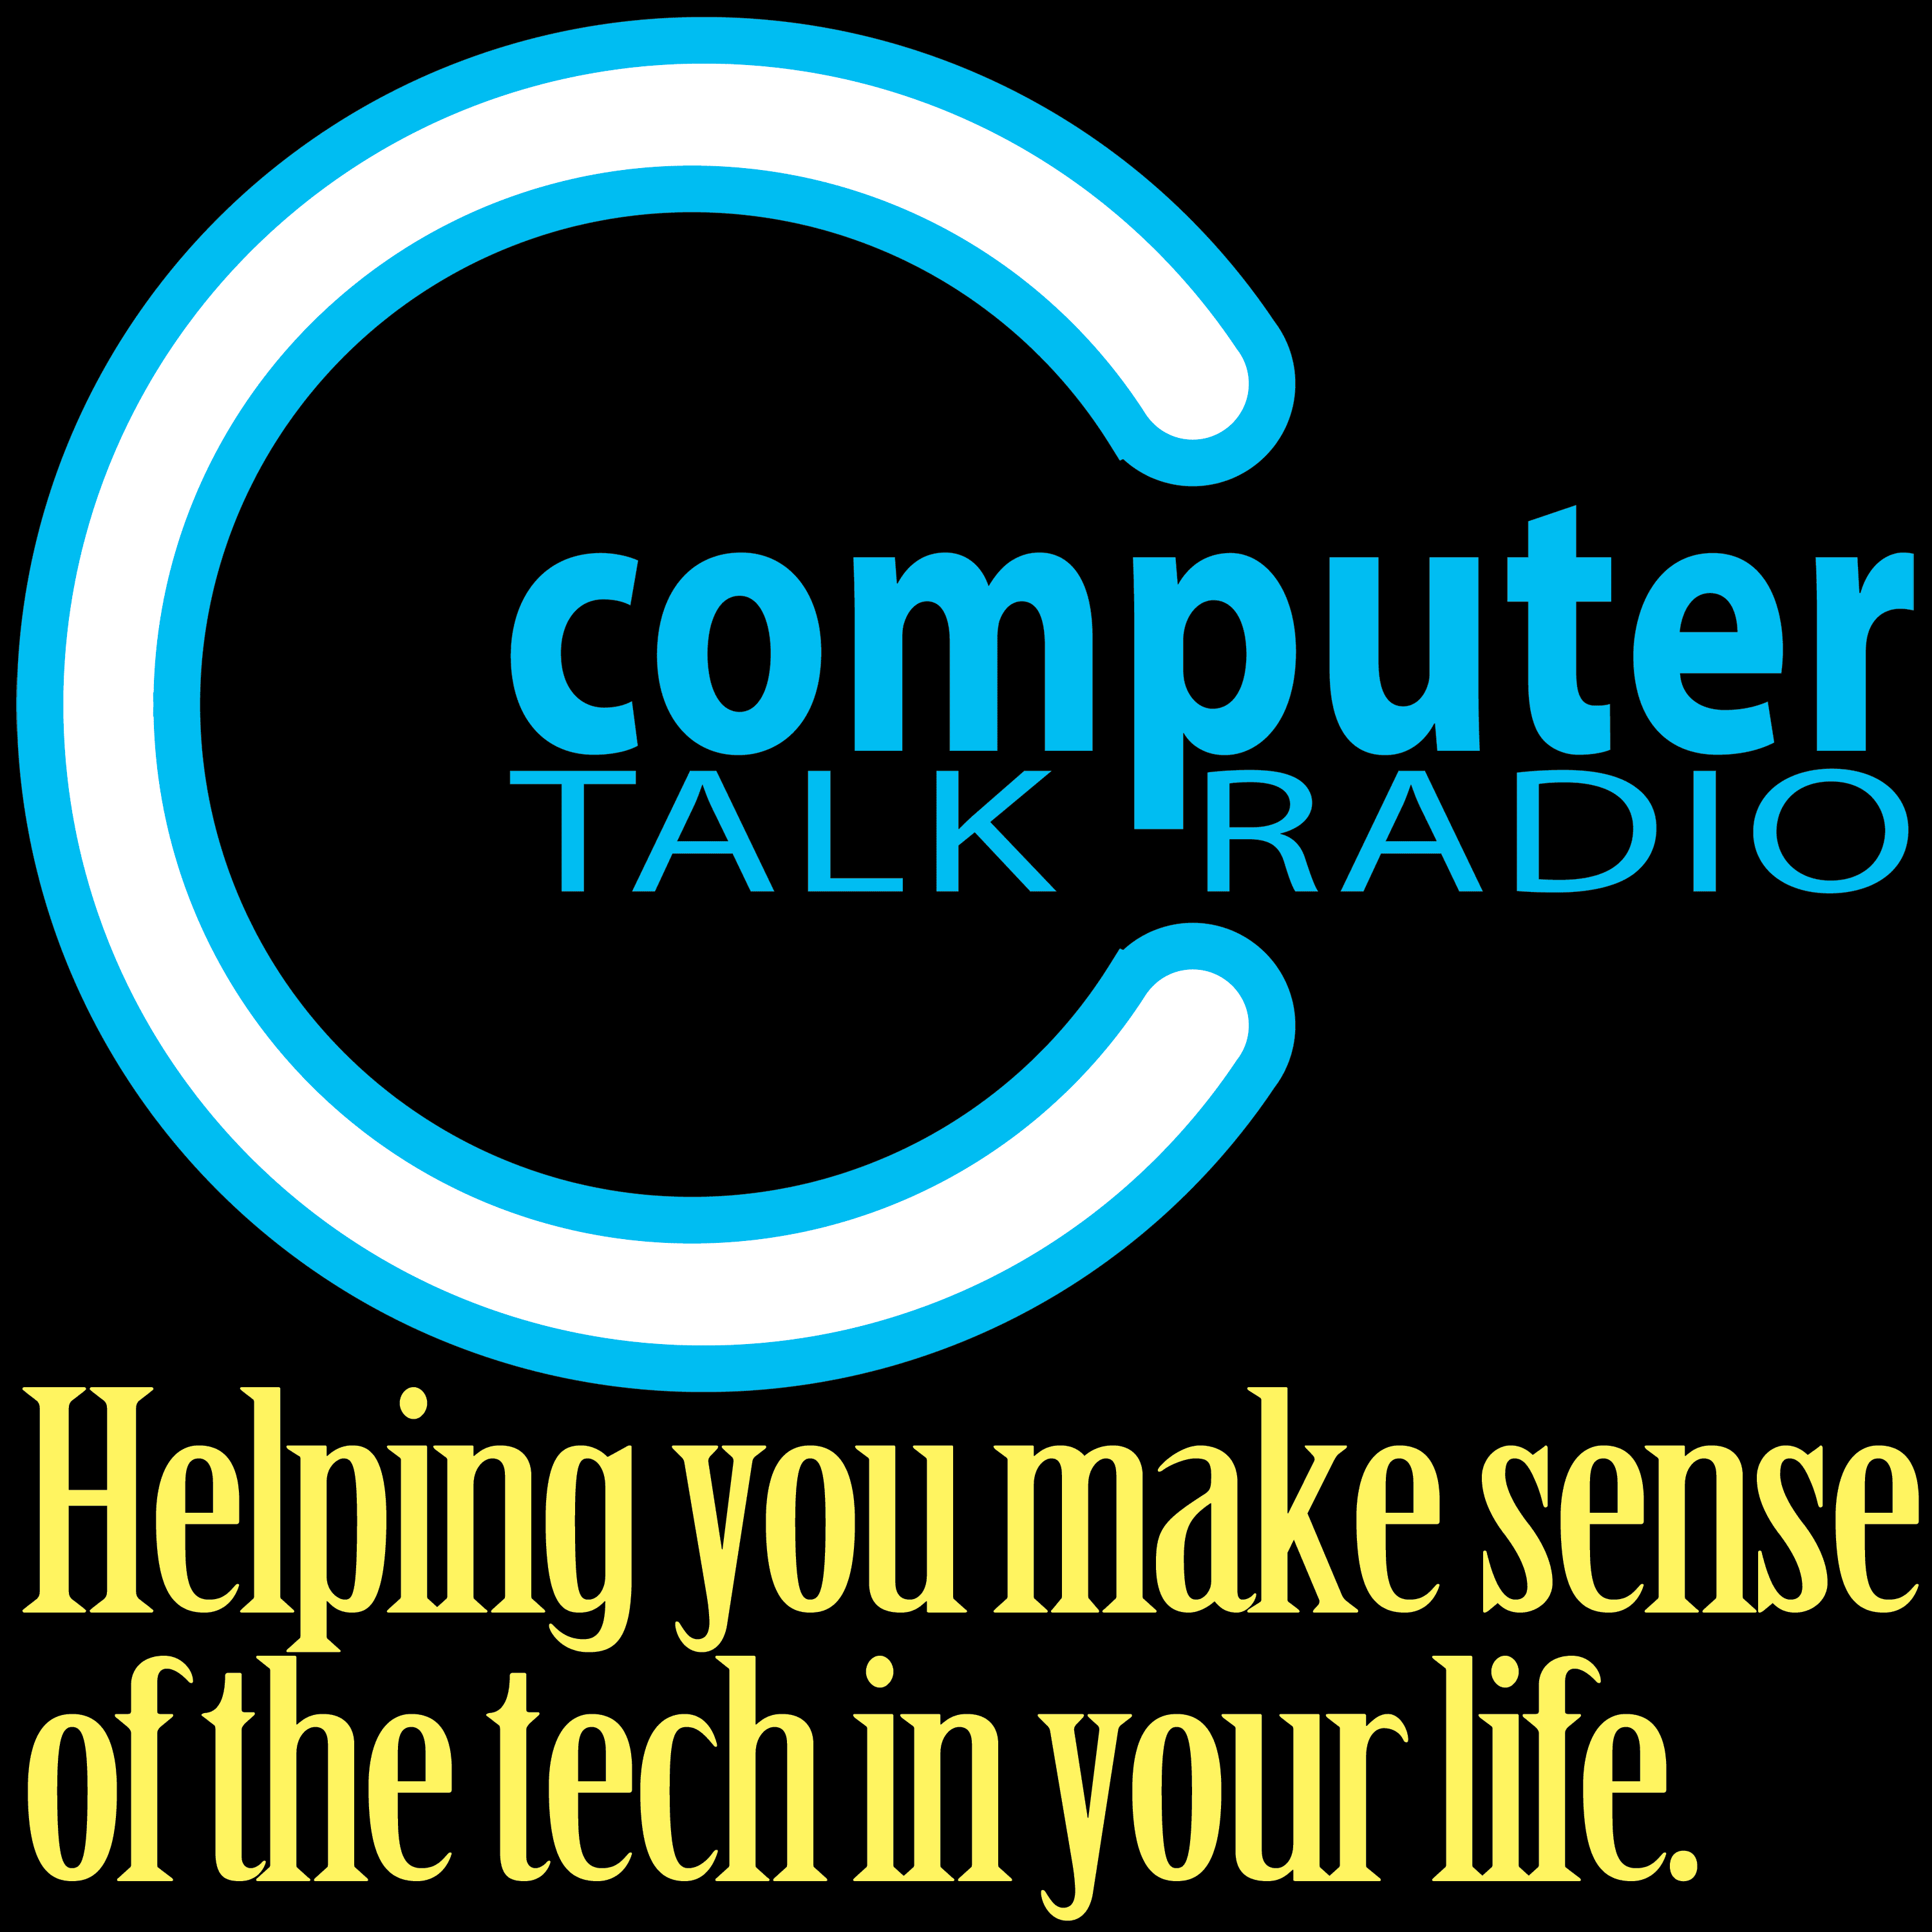 A highlight from Computer Talk Radio Broadcast 09-11-2021